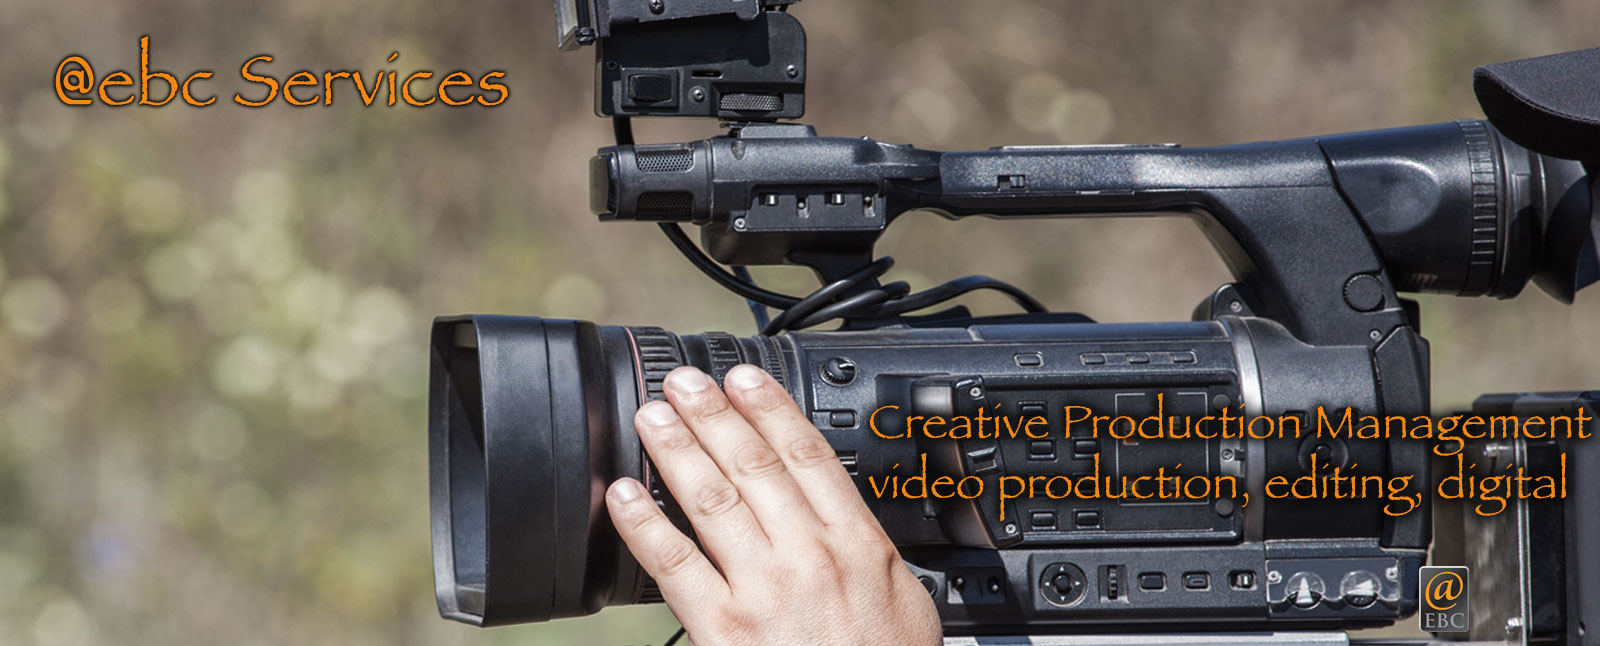 video production at ebc inc